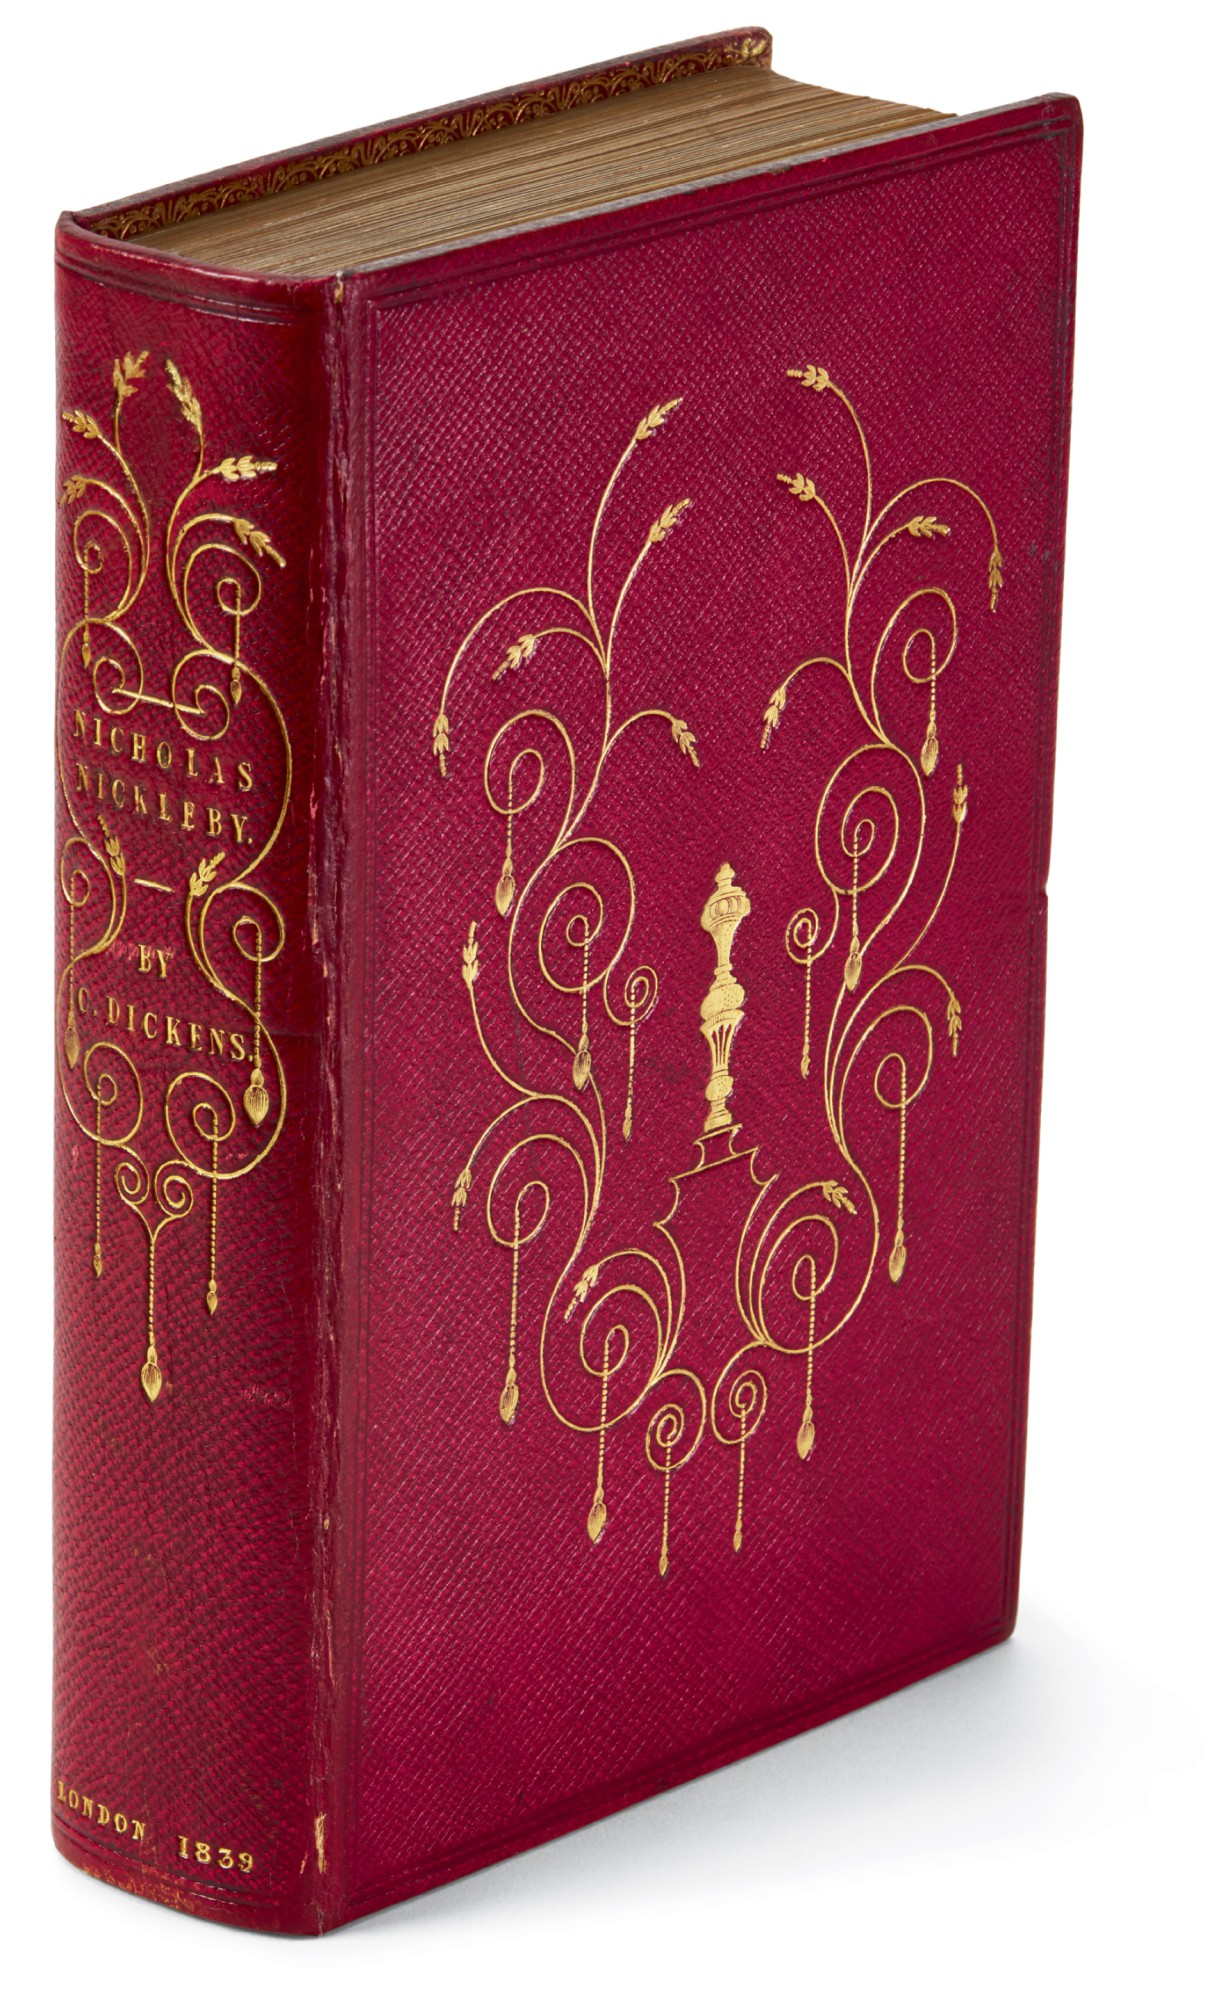 Dickens, Nicholas Nickleby, 1839, first edition, presentation copy in presentation binding inscribed to Lady Holland